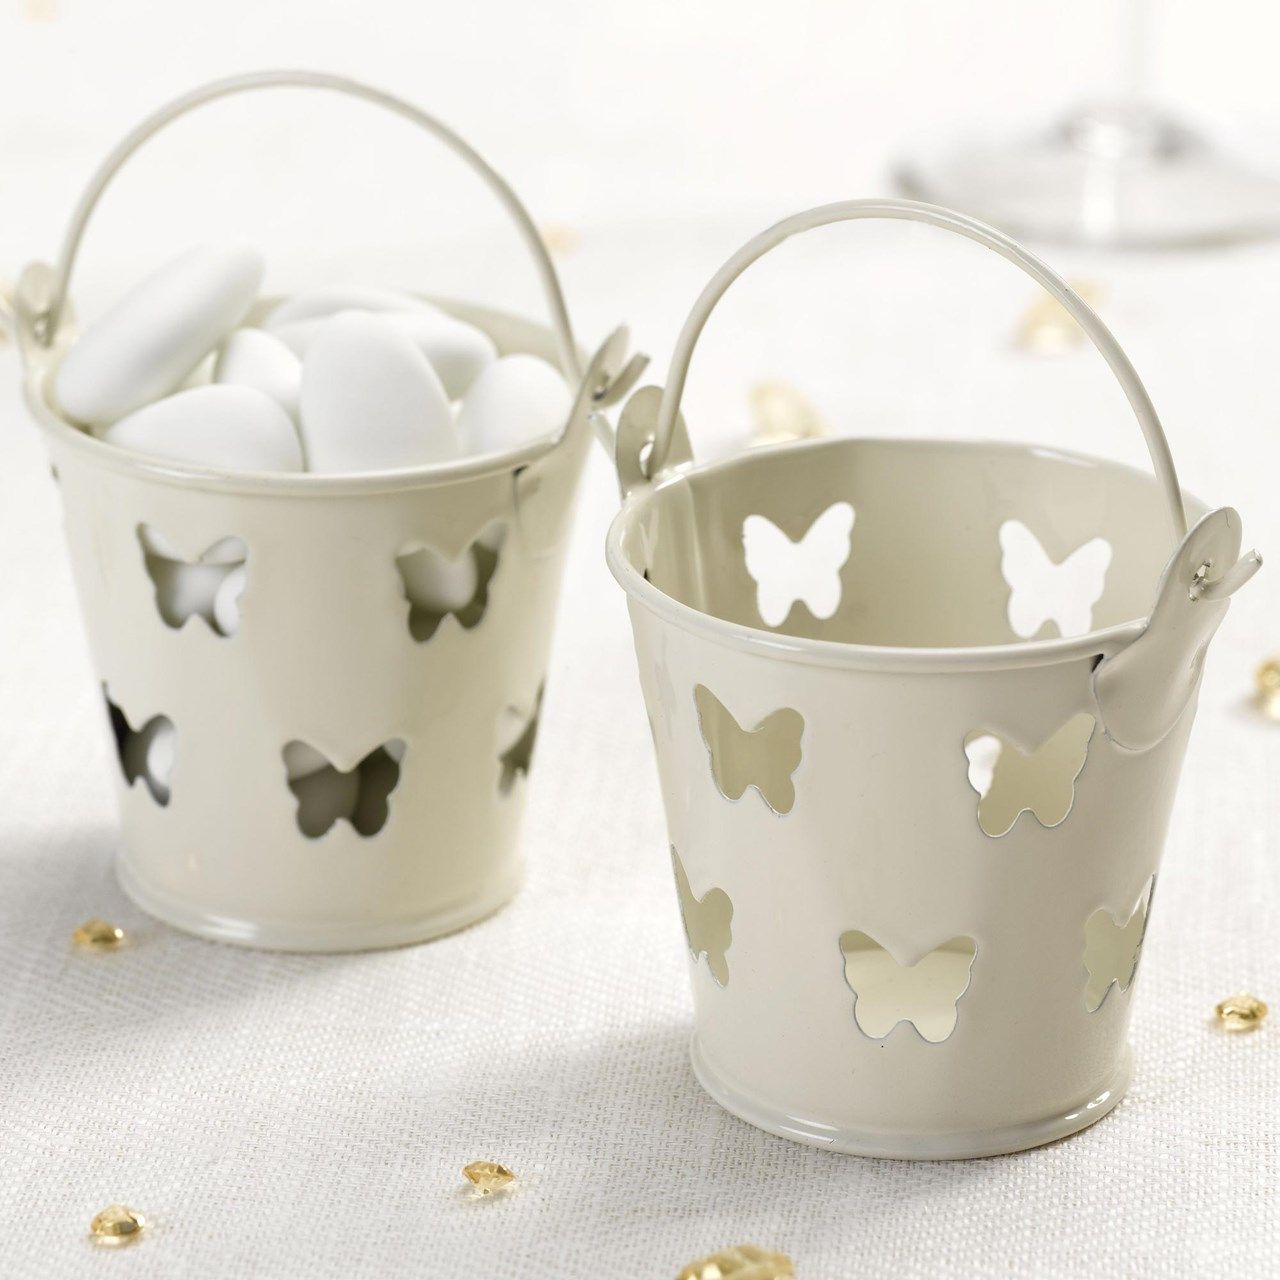 Elegant Butterfly Favour Pails - Ivory | UK Wedding Favours ...